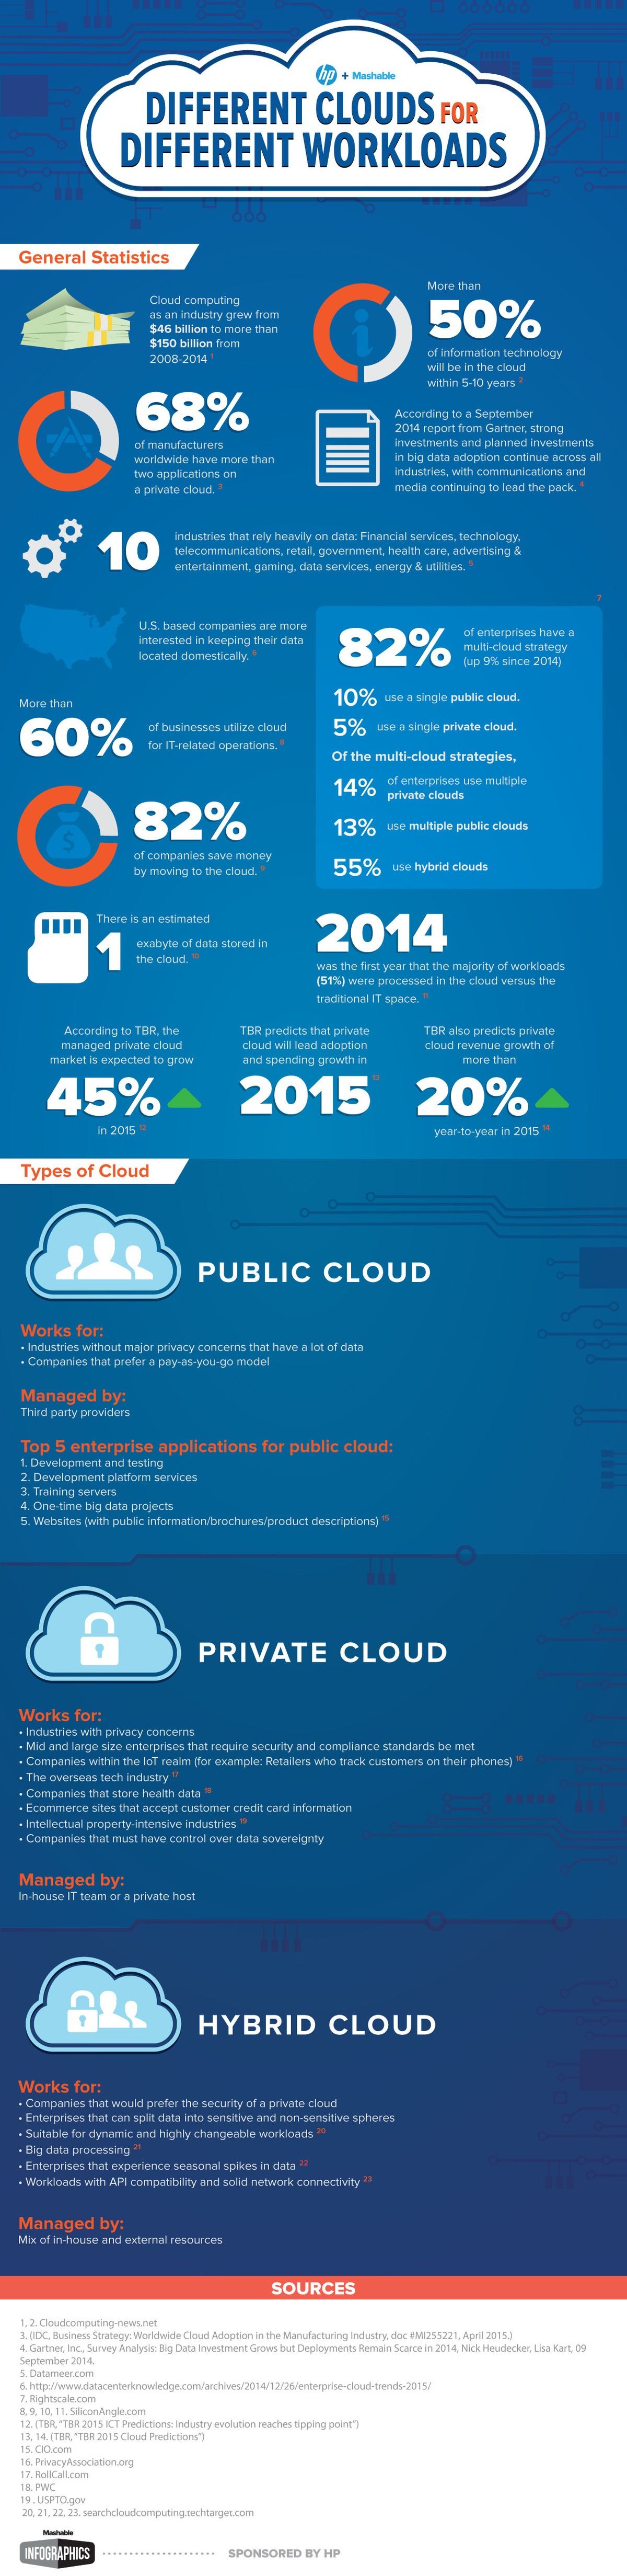 HP_Cloud_infographic_draft2